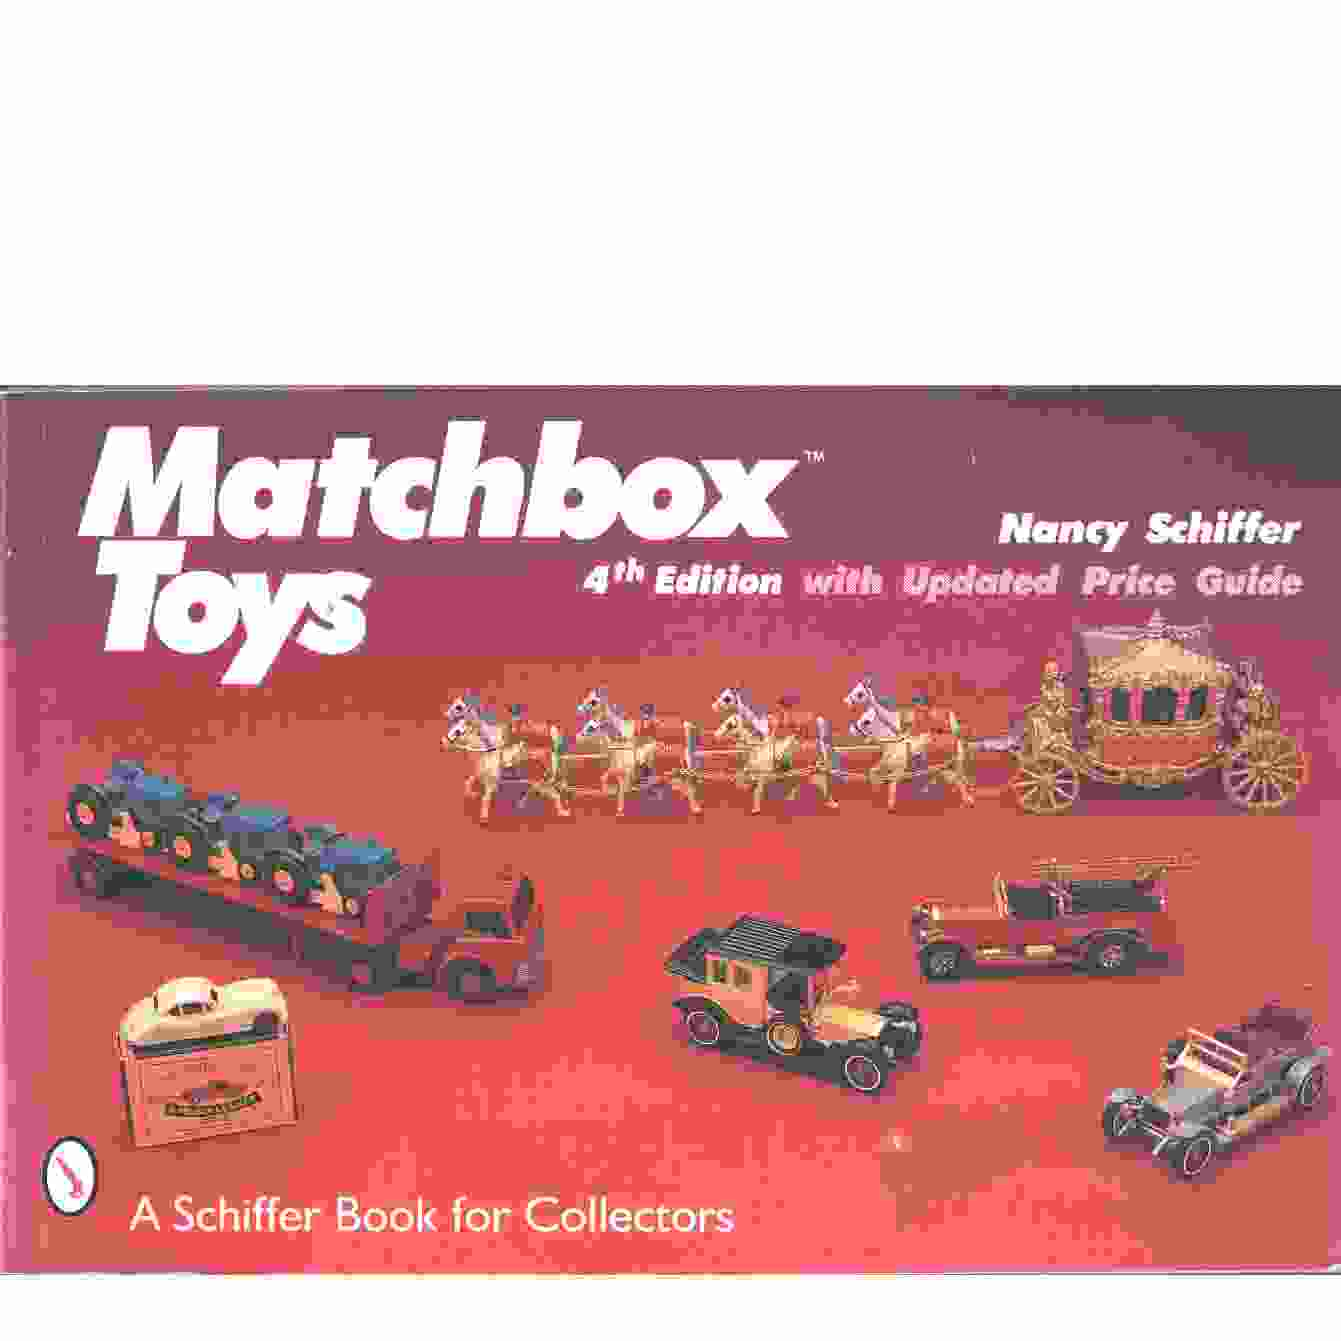 Matchbox toys - Schiffer Nancy